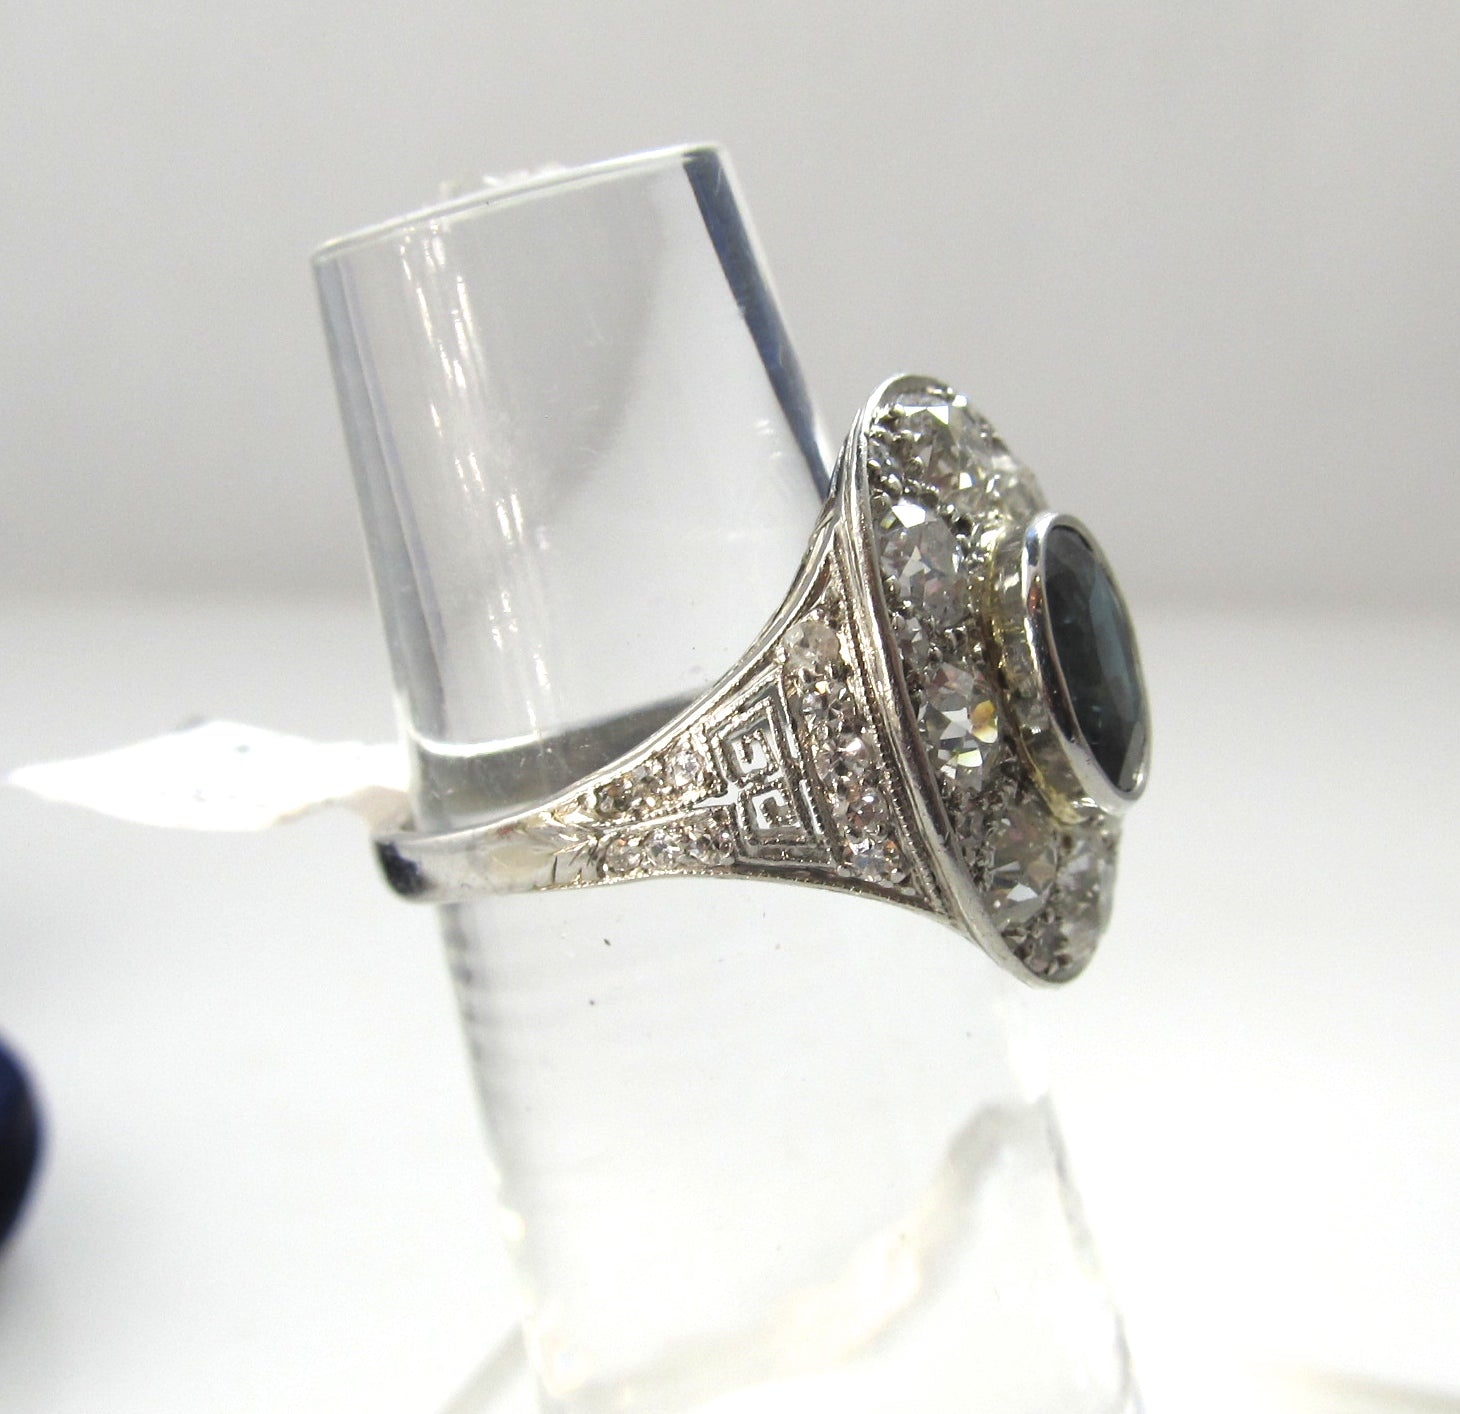 Antique platinum filigree statement ring with diamonds and a sapphire, circa 1920